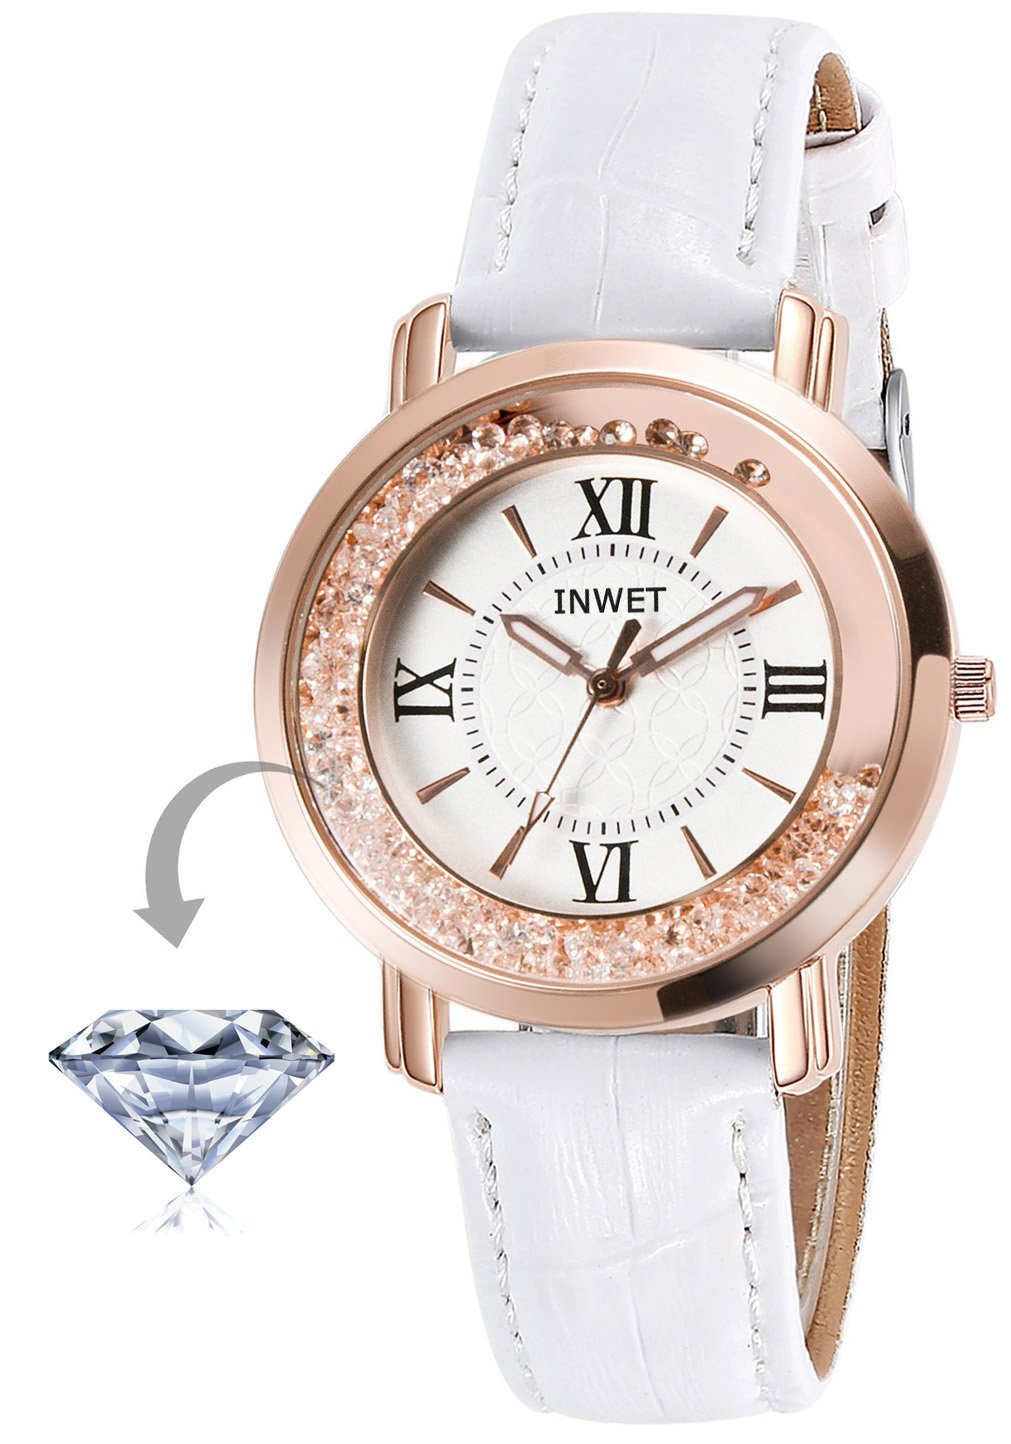 INWET Crystal Wristwatch for Women and Girls,Rose Gold Case, White Leather Strap